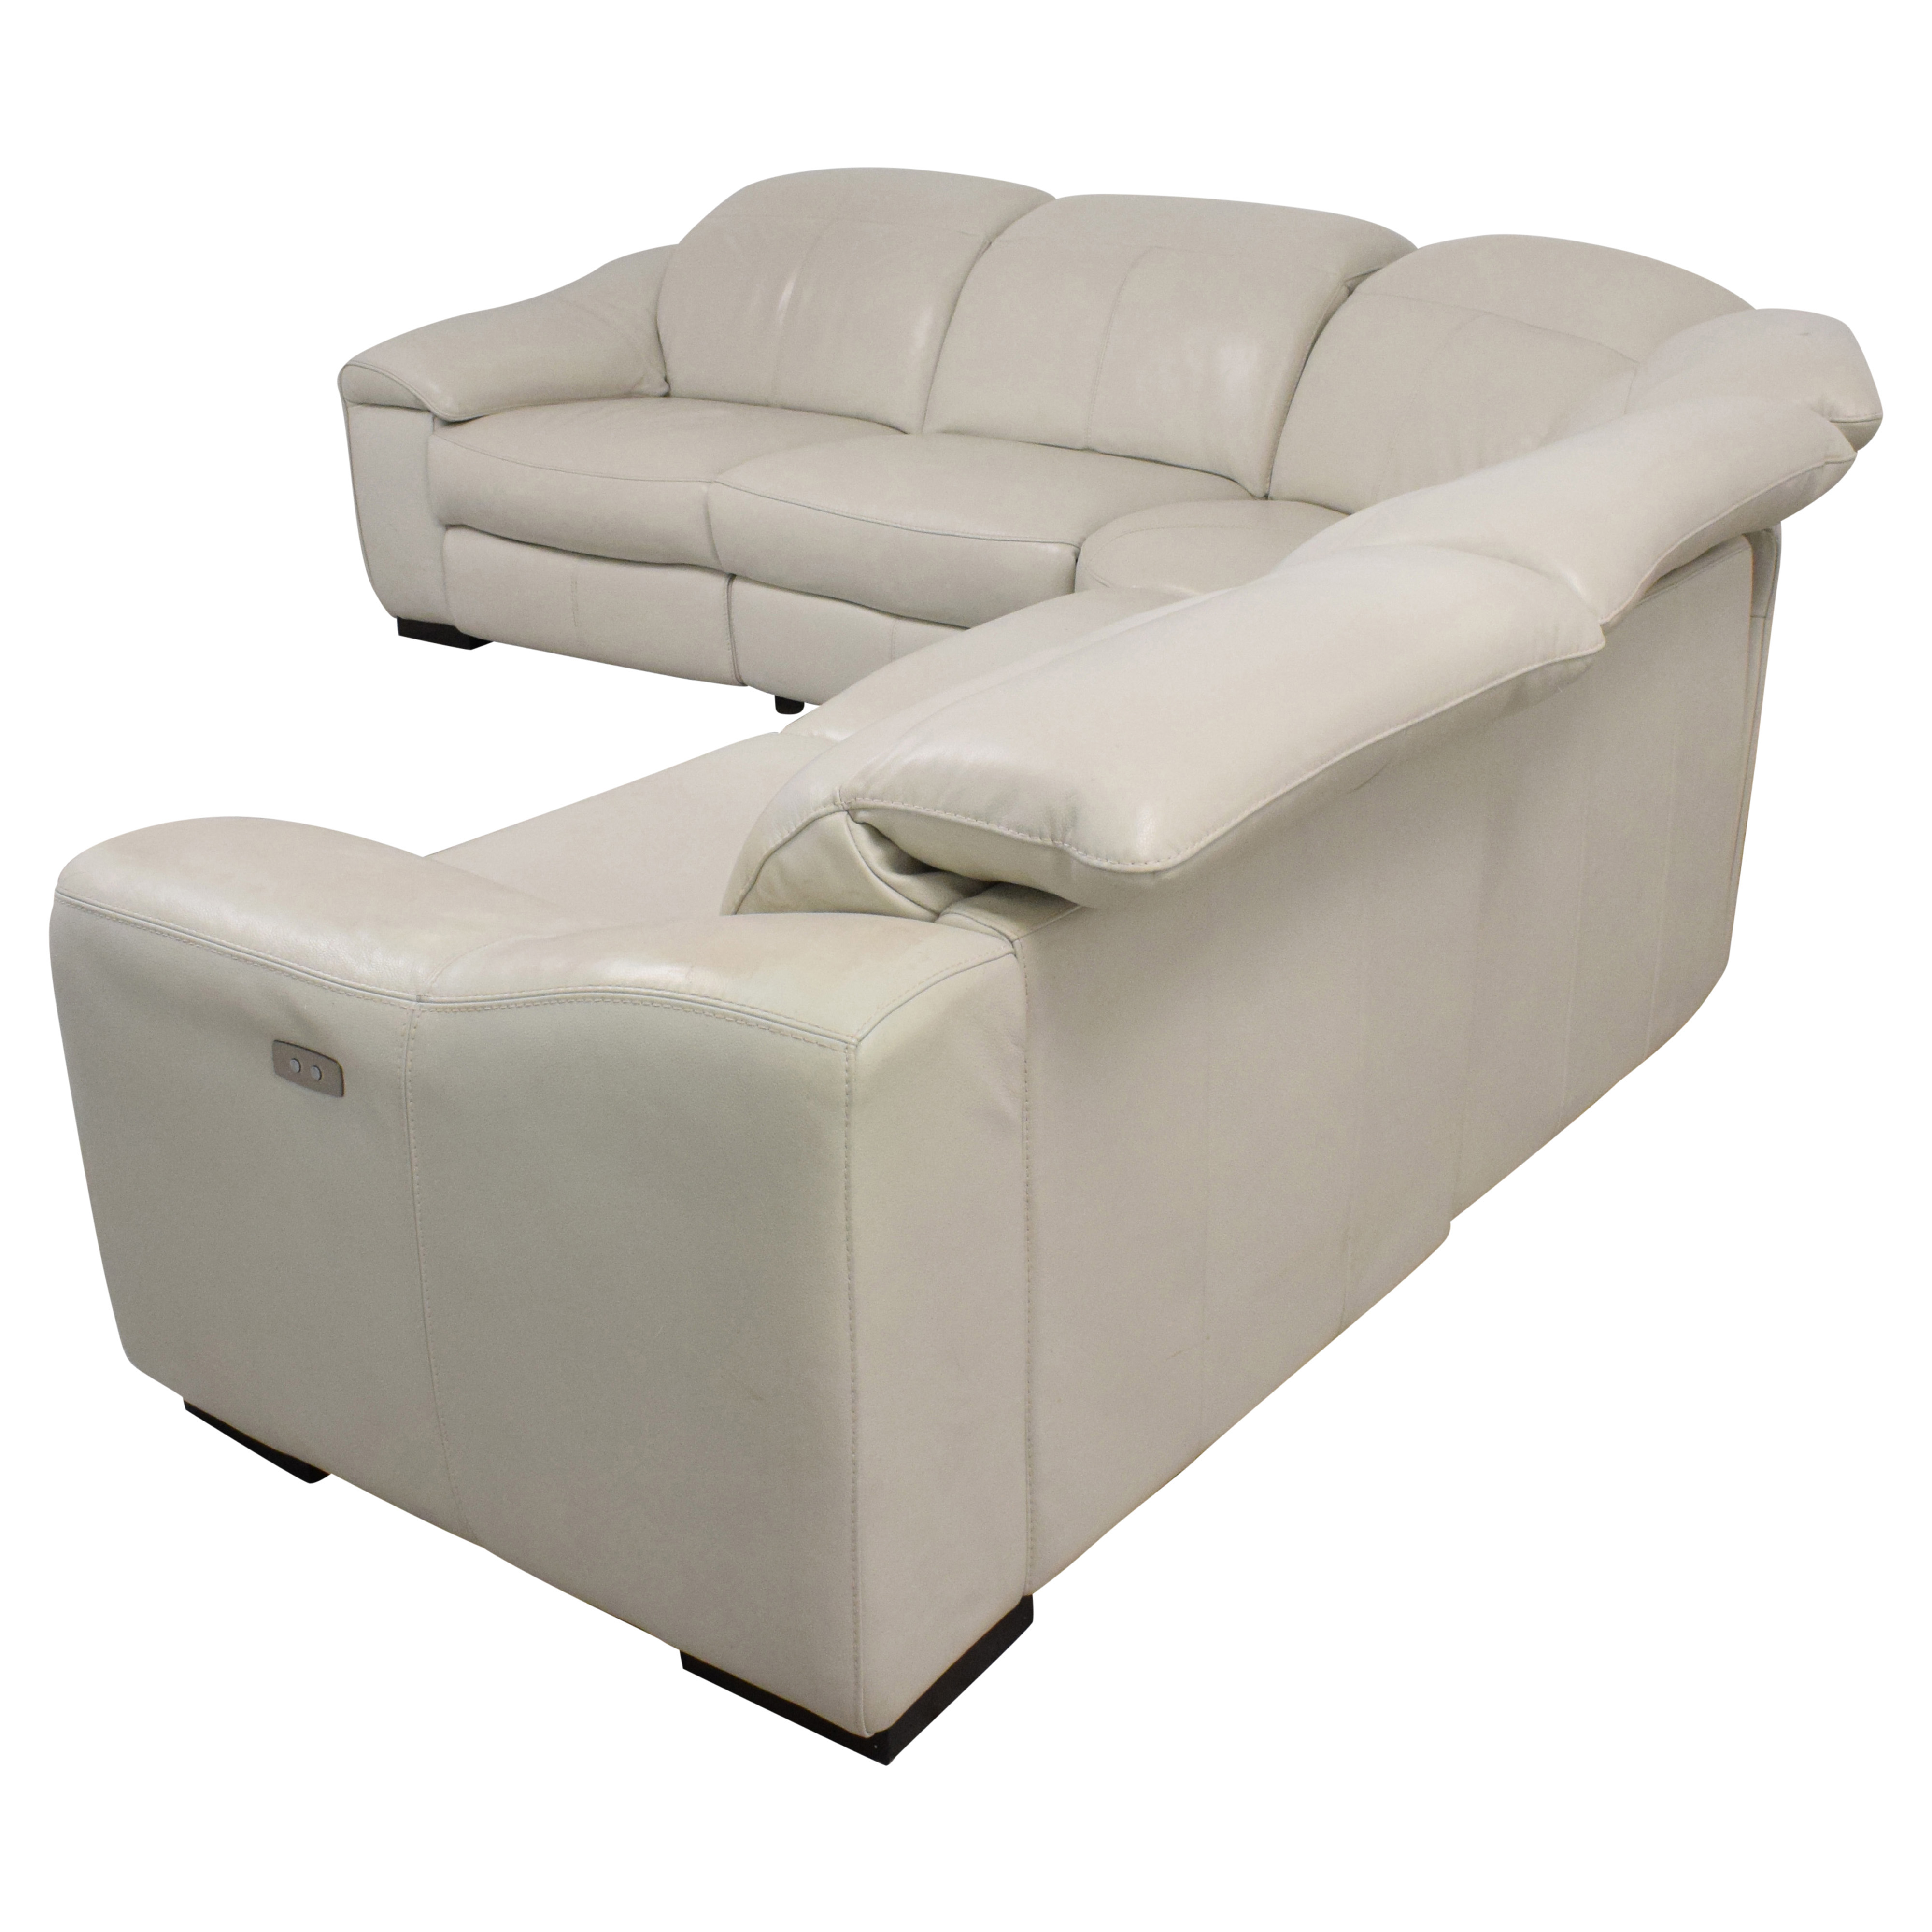 Macy's Macy's Power Reclining Sectional Sofa off white